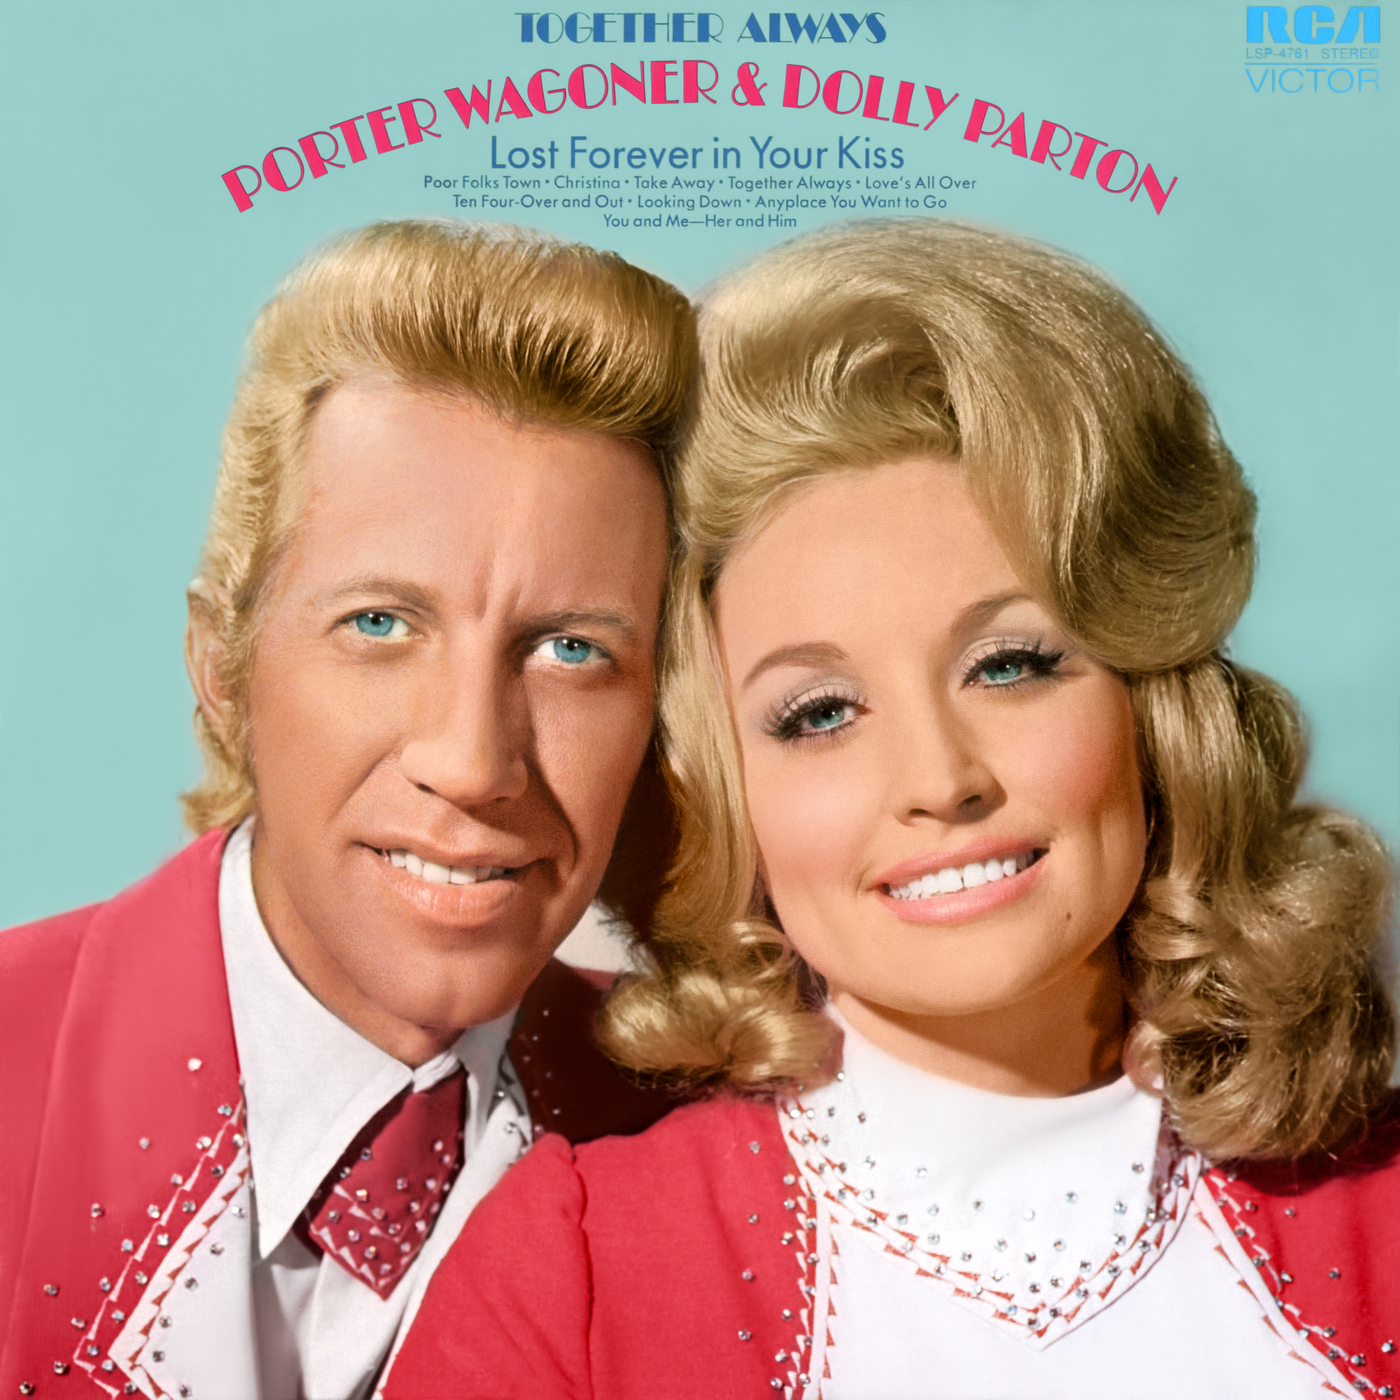 Together Always - Porter Wagoner